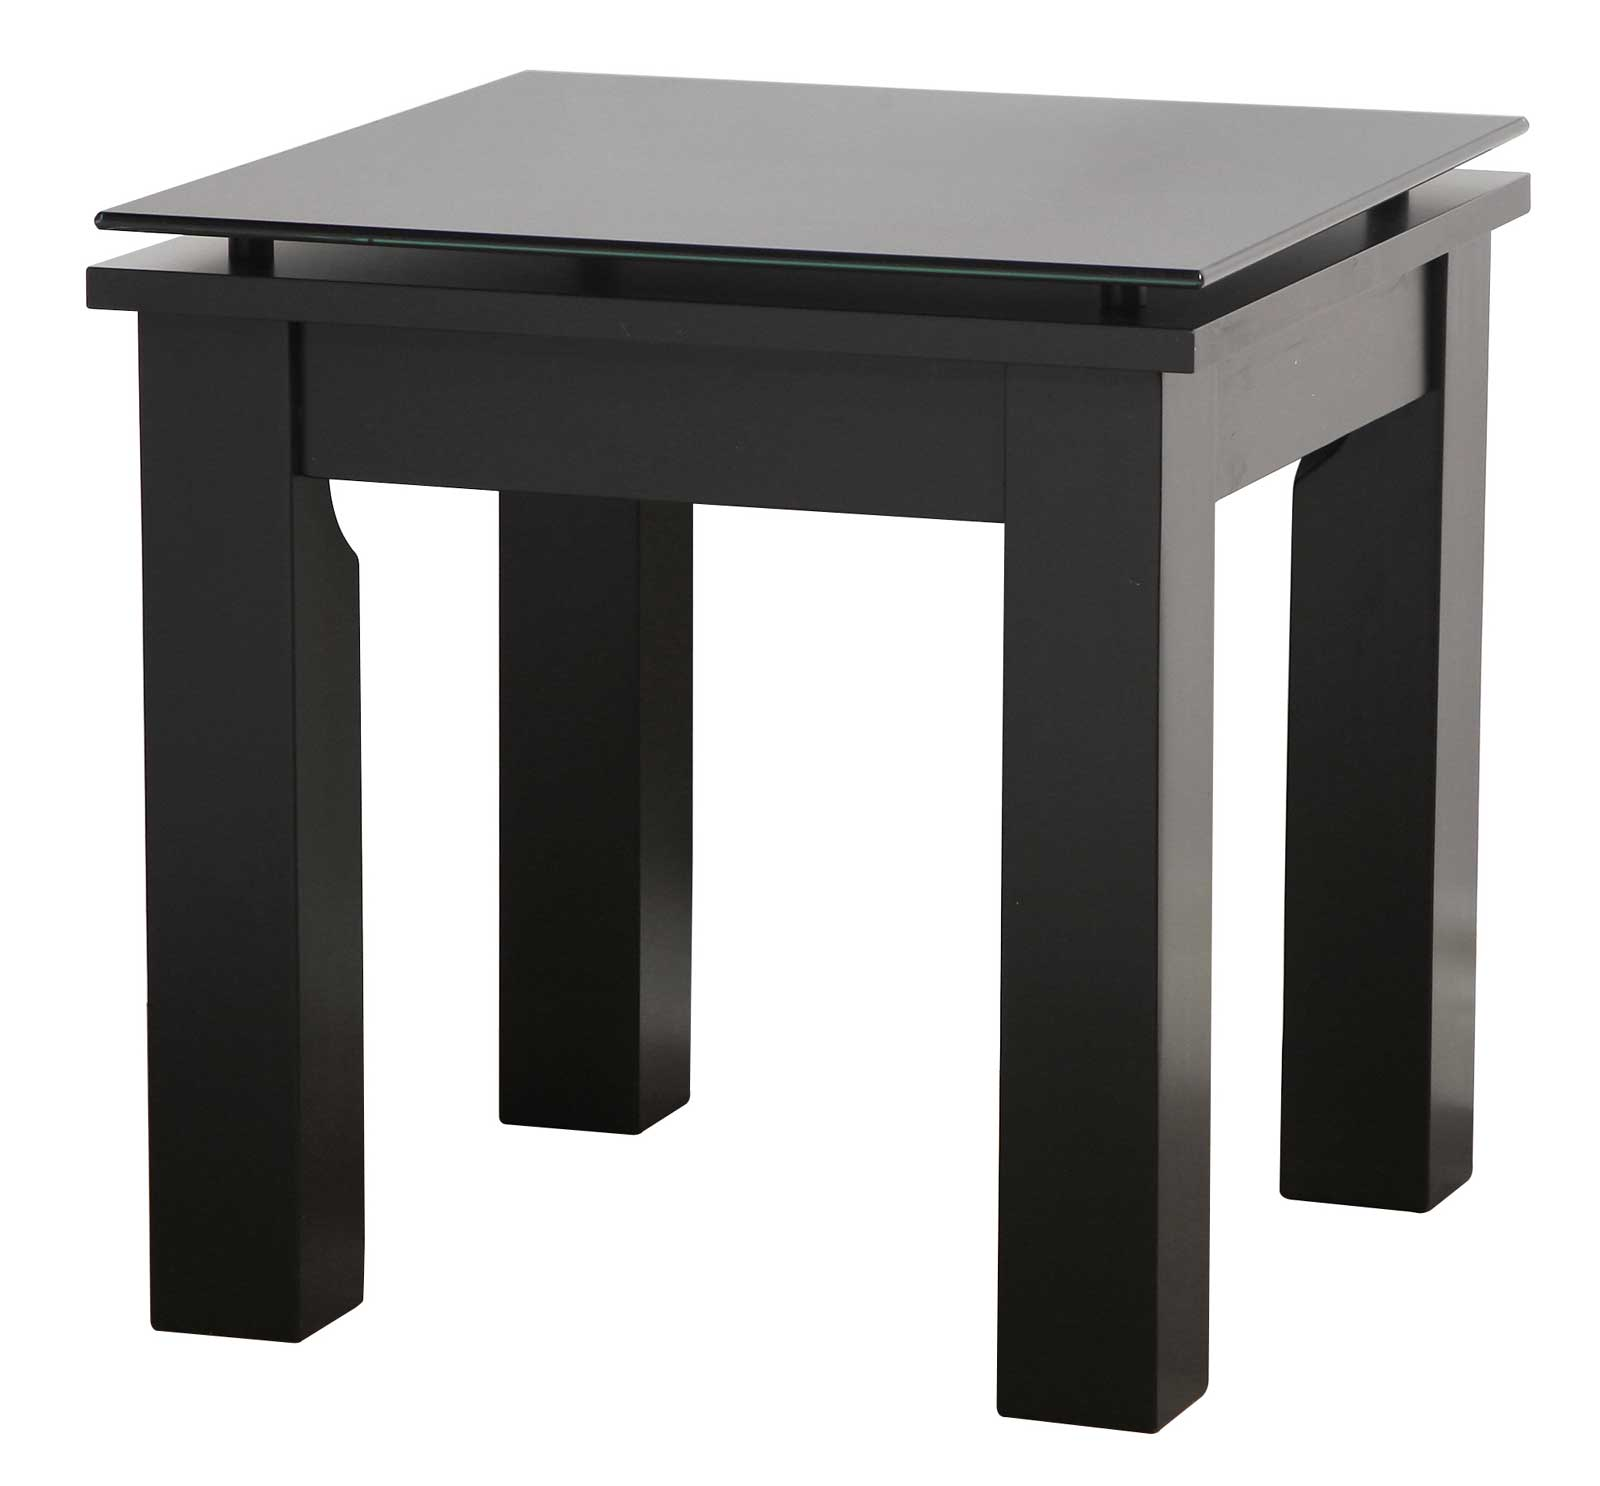 target iron white metal kenzie tables half zane outdoor pedestal corner table and black small antique classic mosaic contemporary round side full size bar pub legs for ikea